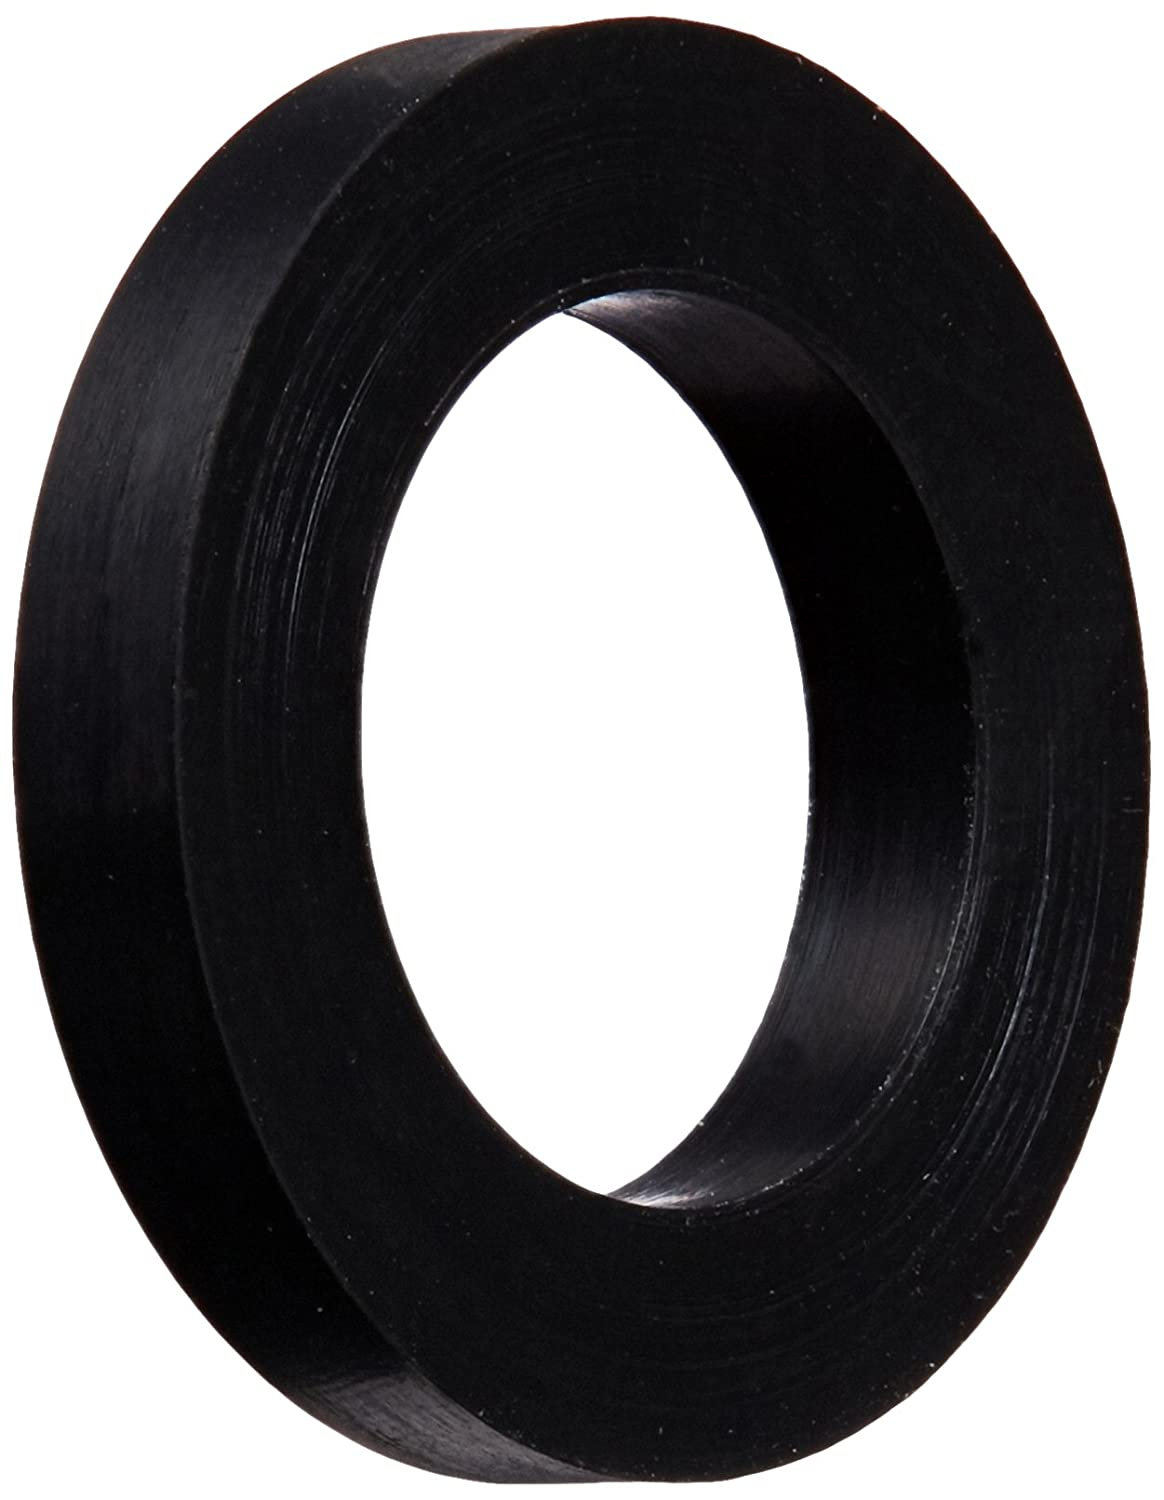 Home Brew Stuff VWASHER Beer Line Neoprene Coupling Washer, Set of 6, Black Learn To Brew